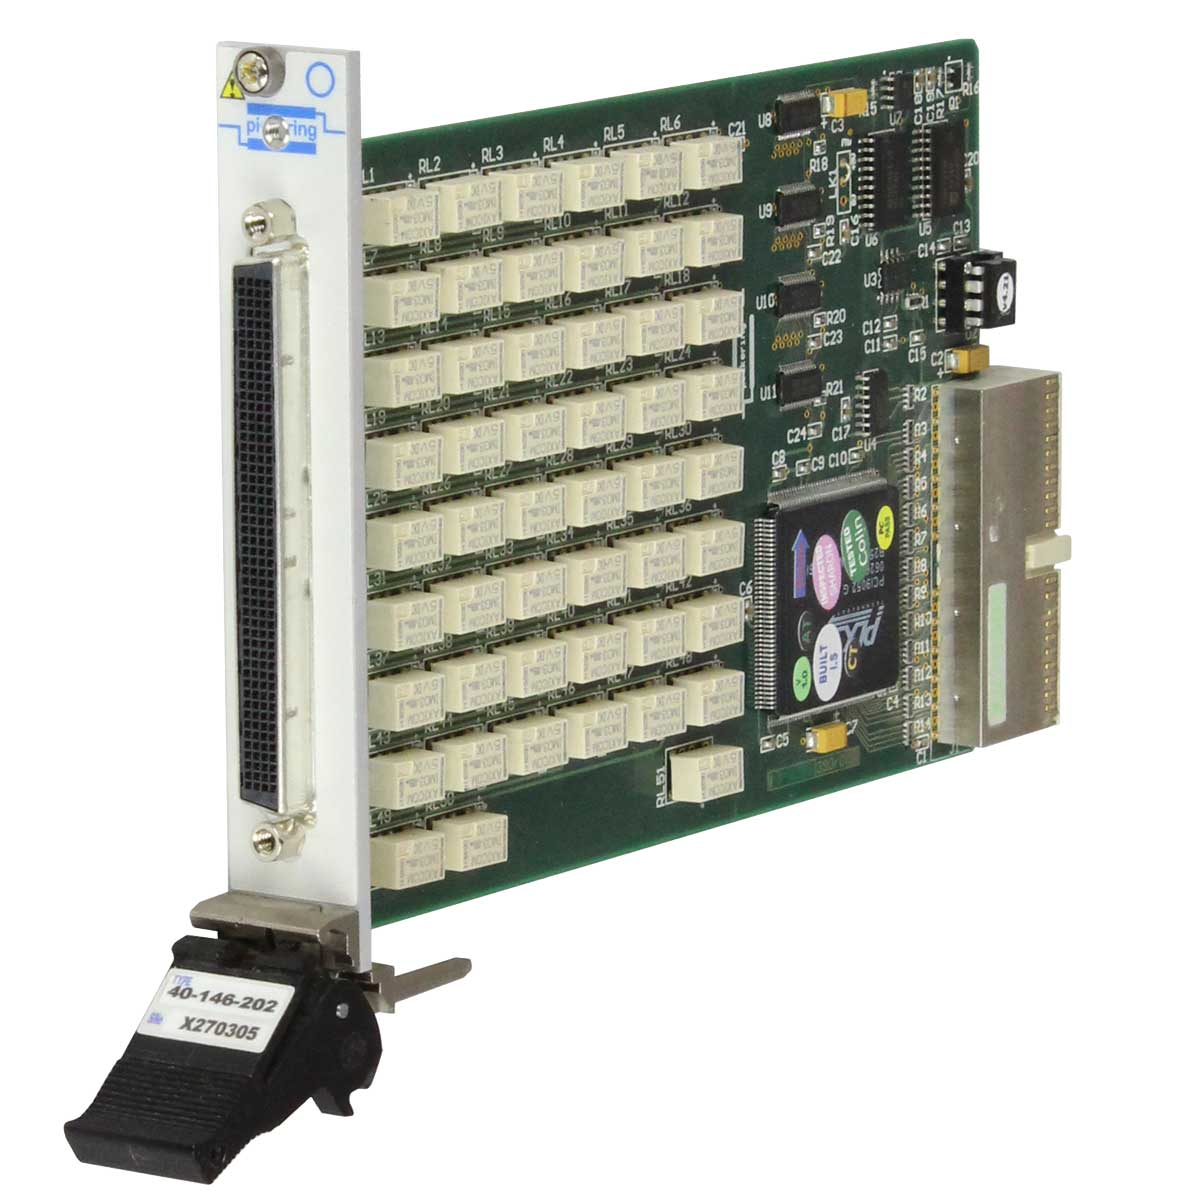 Pxi 64 X Spdt Electromechanical Relays 40 148 201 Next The Four Relay Outputs From Remote Control Inbuilt